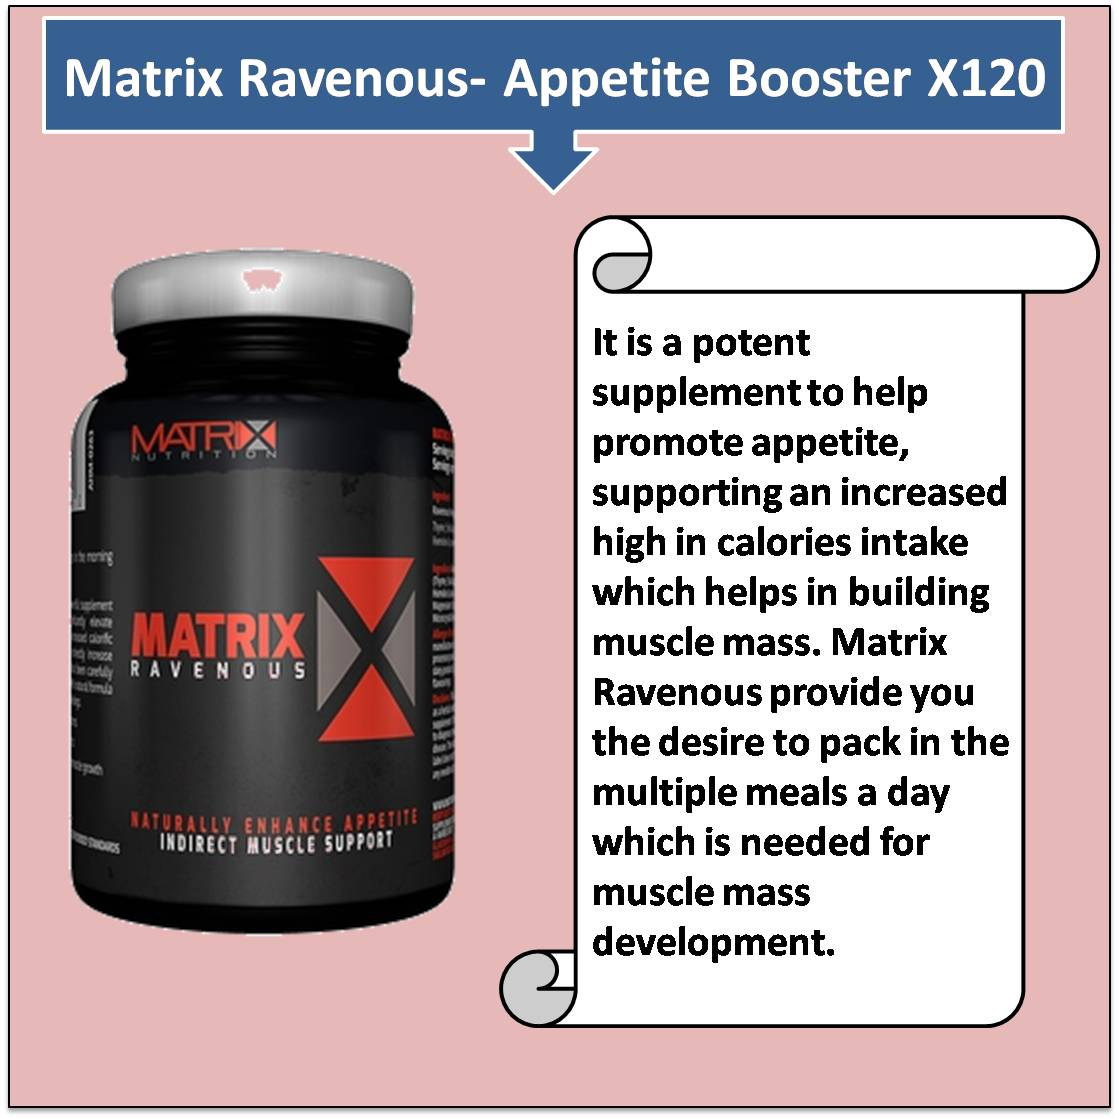 Matrix Ravenous- Appetite Booster X120Matrix Ravenous- Appetite Booster X120